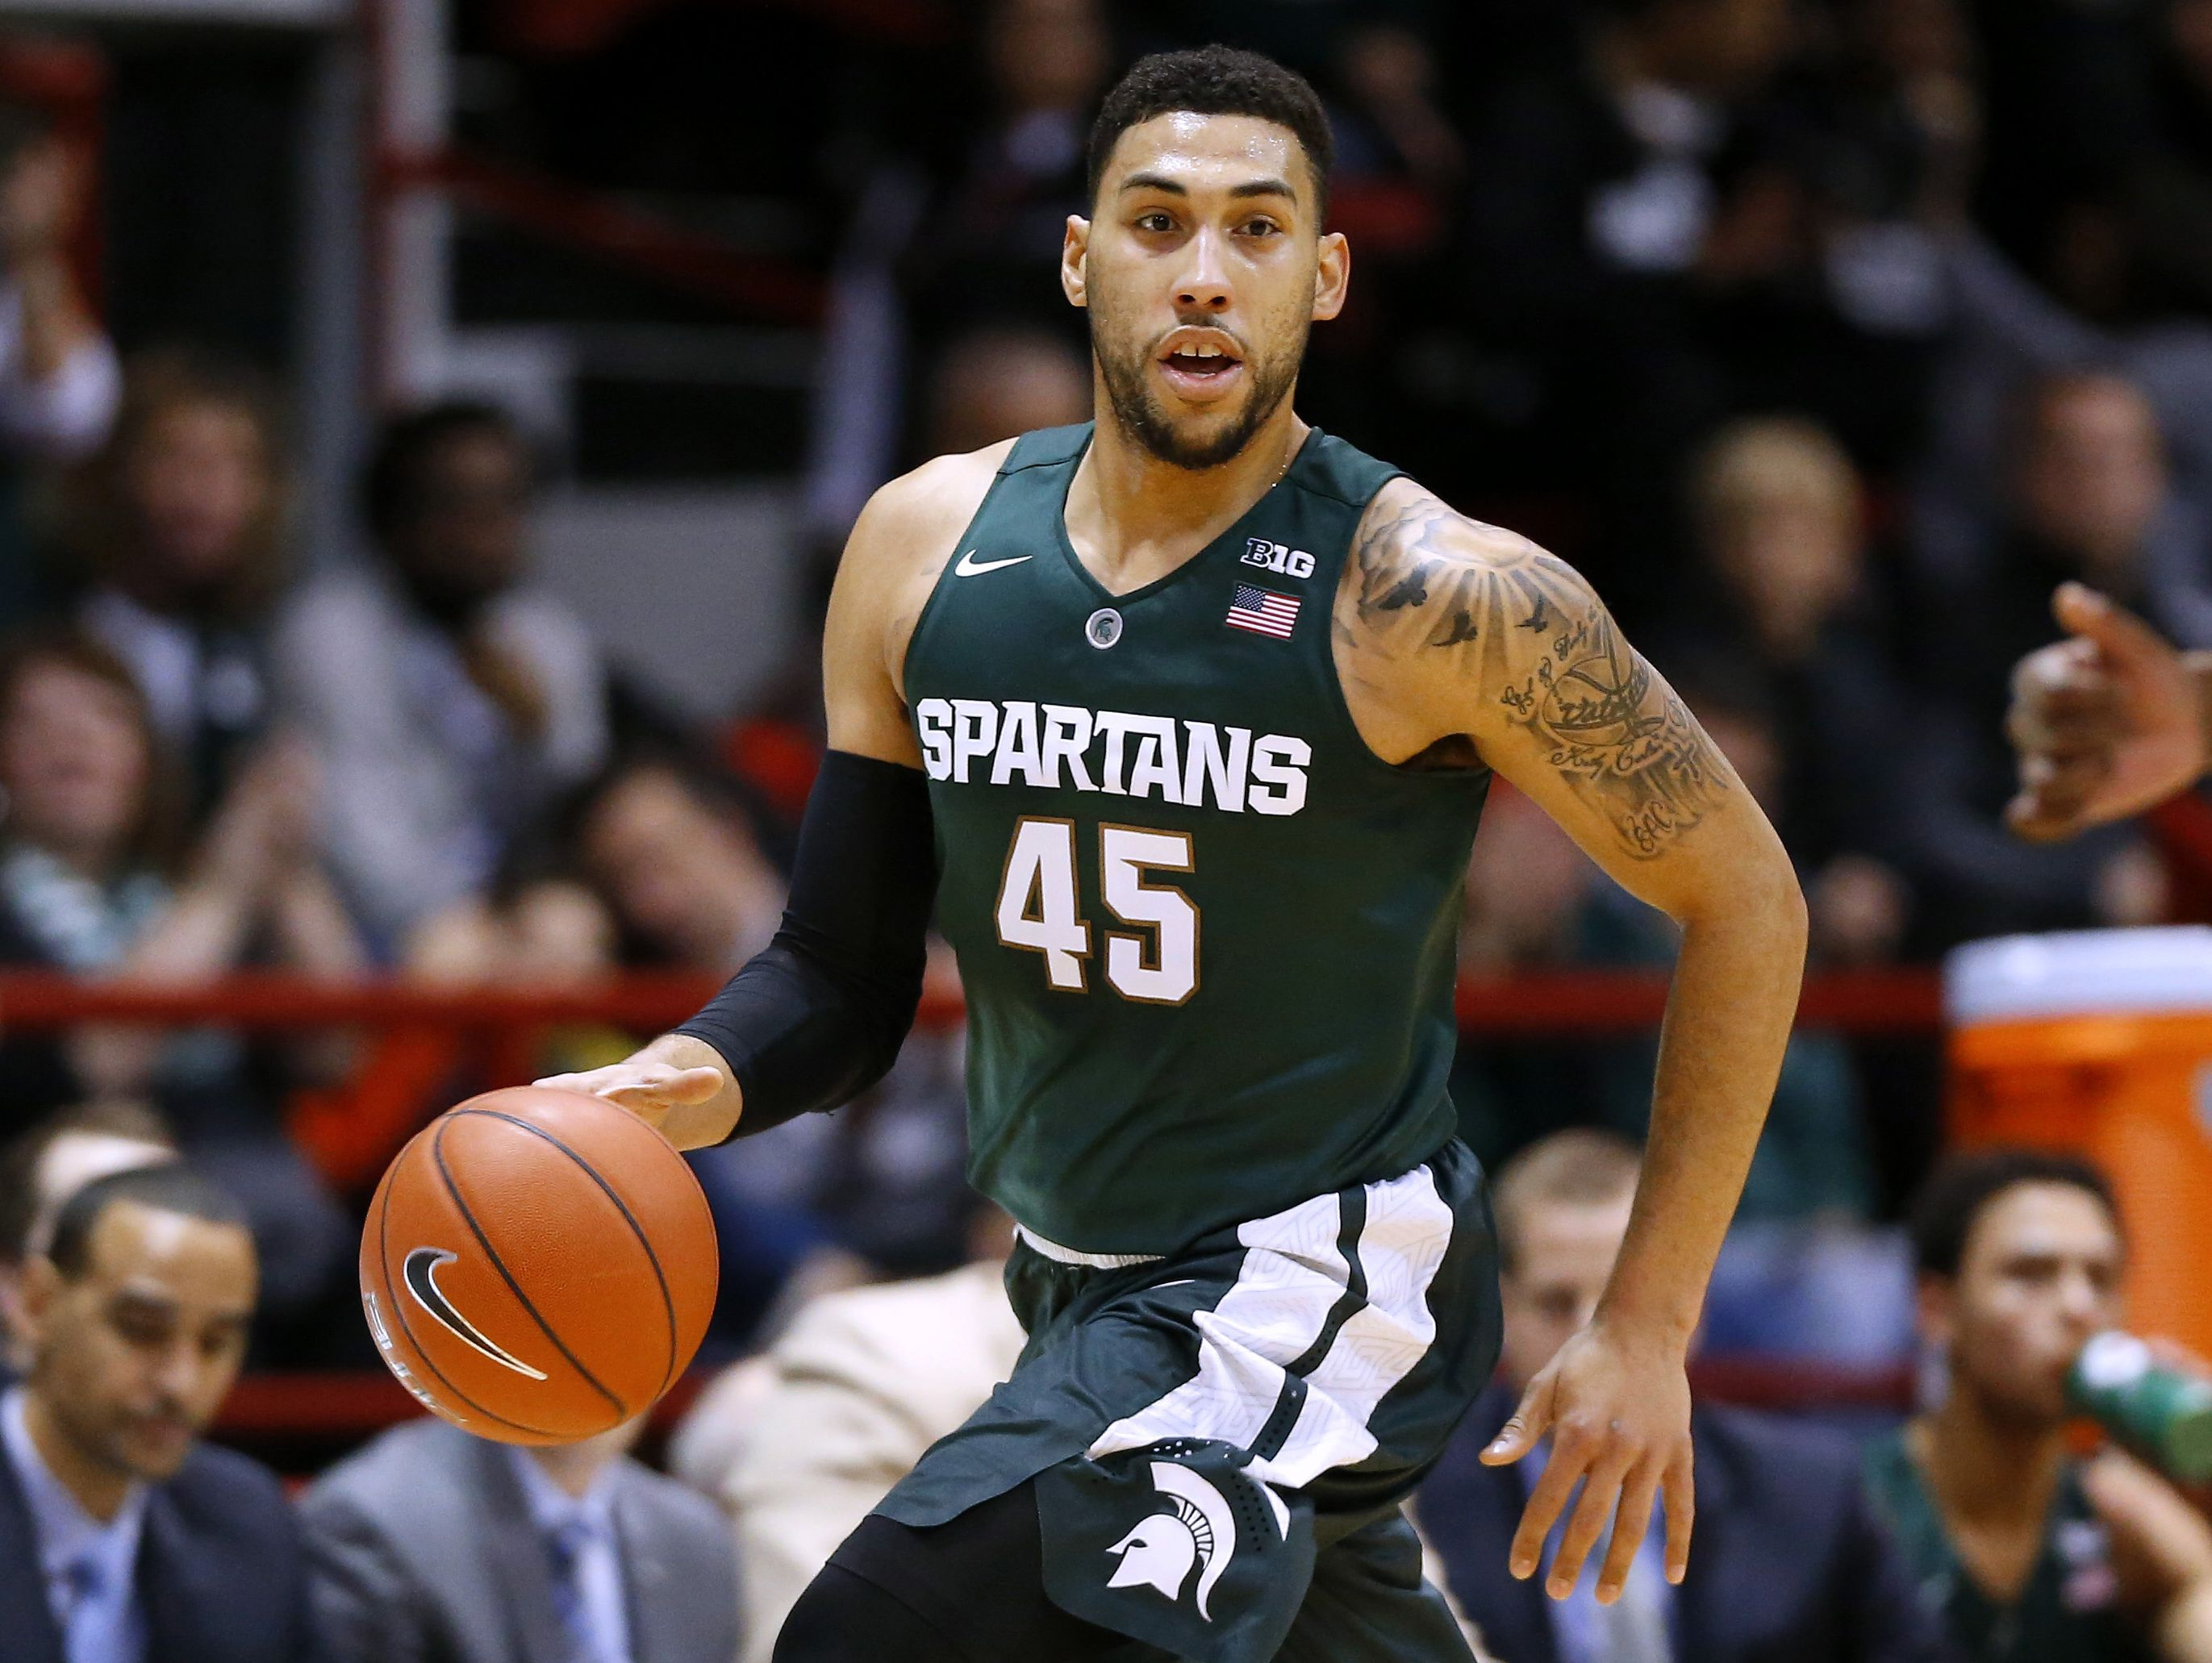 In this Dec. 19, 2015, file photo, Michigan State's Denzel Valentine brings the ball upcourt during the first half of an NCAA college basketball game against Northeastern in Boston.